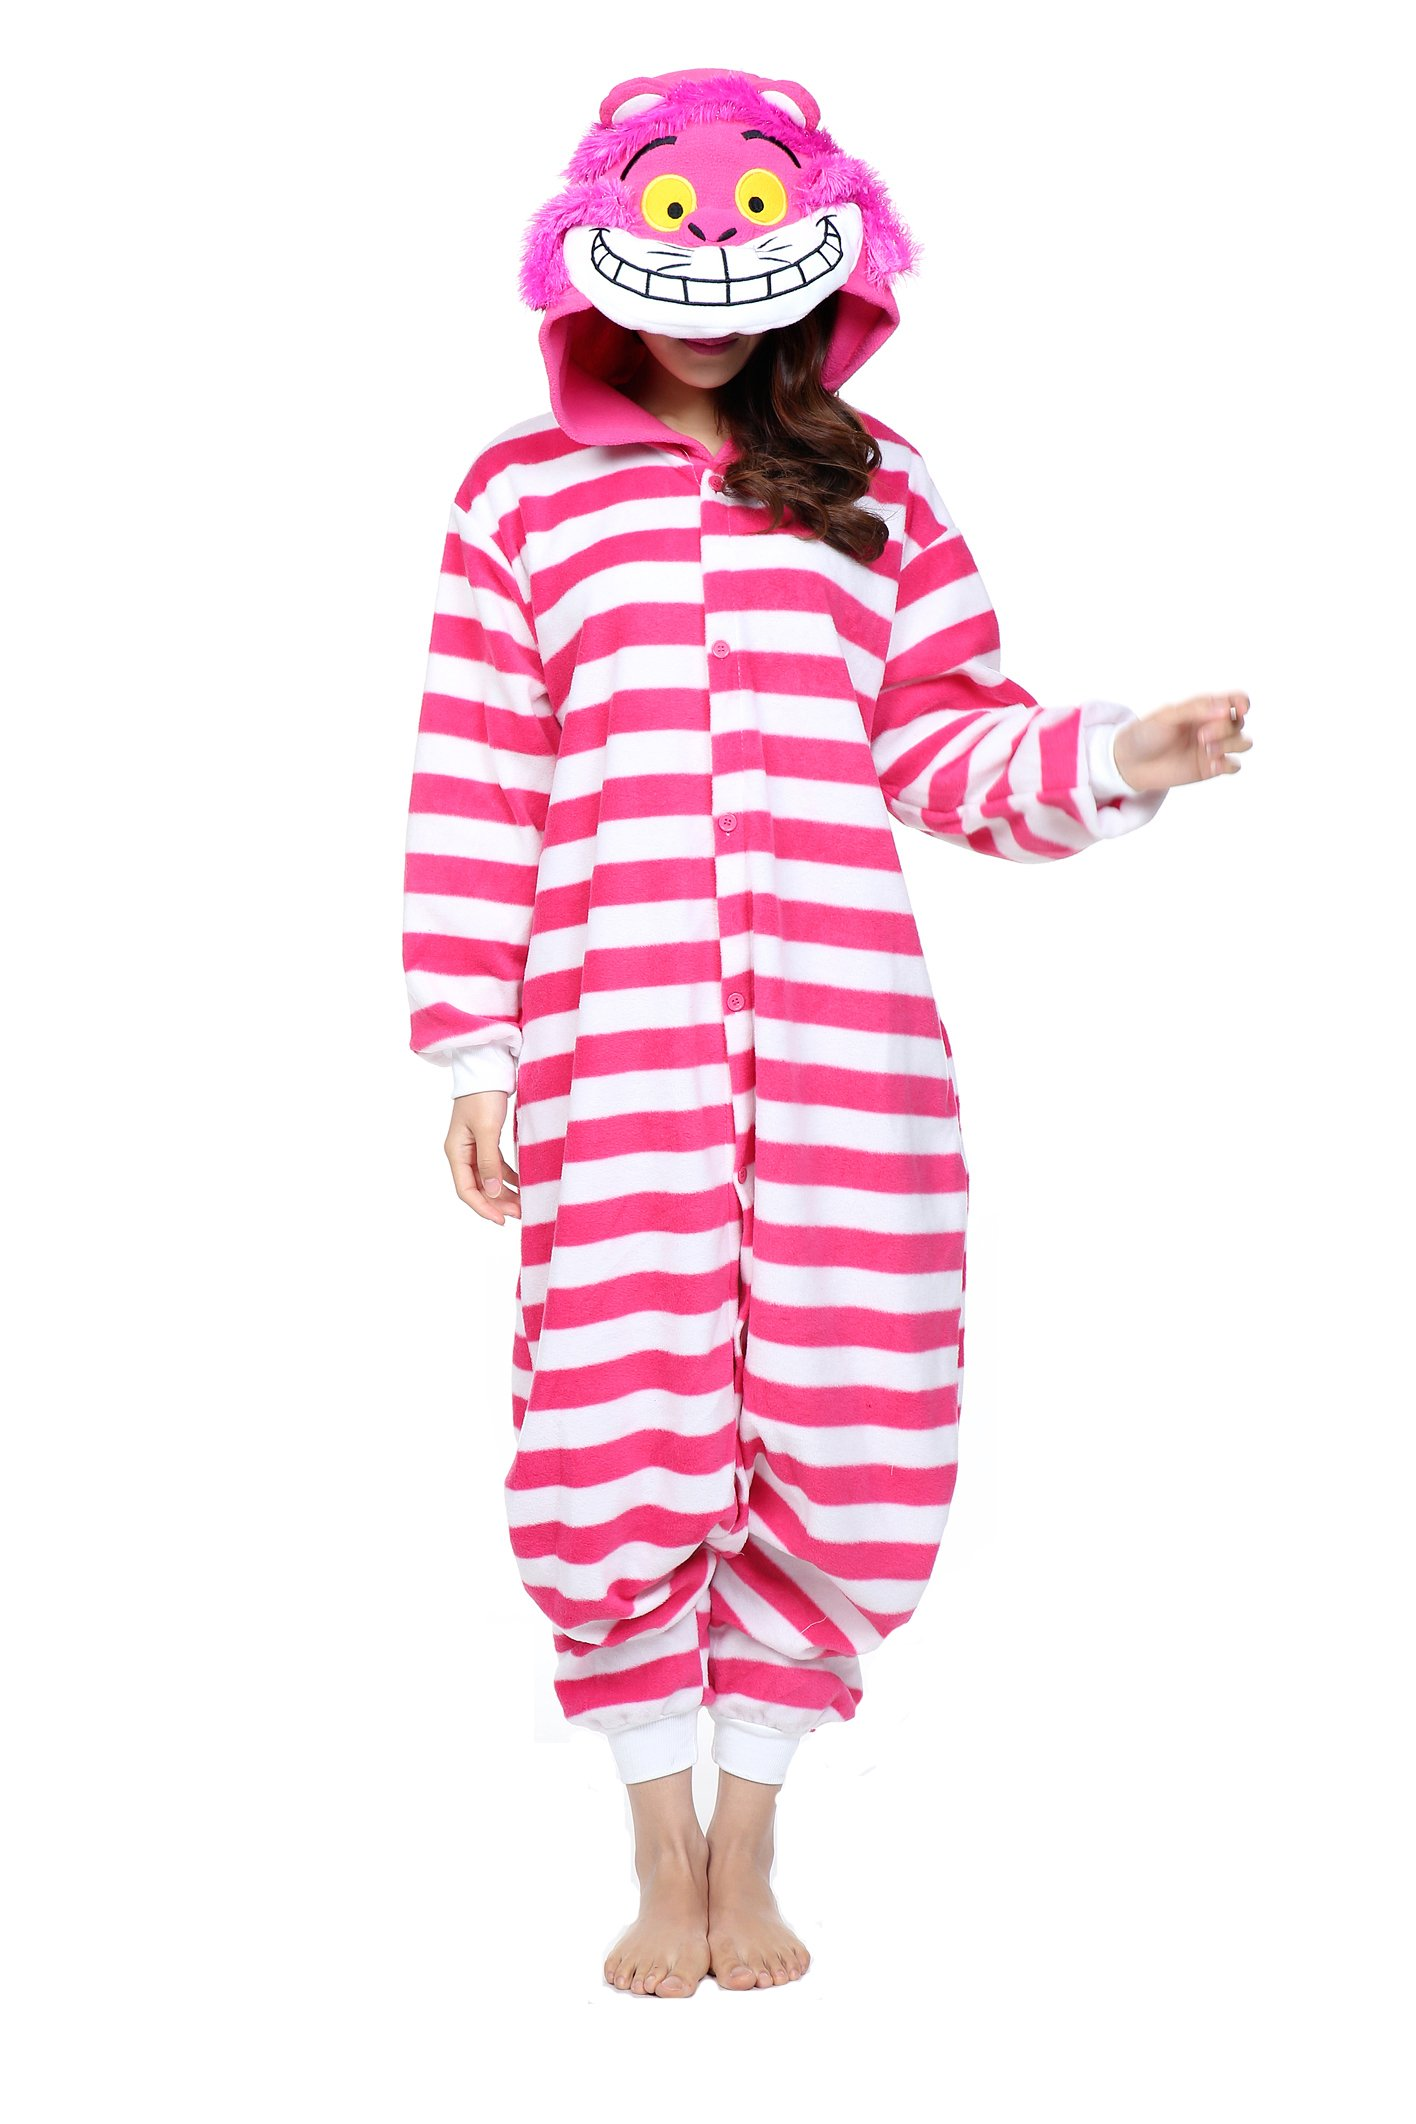 Women's Pink Cheshire Cat Anime Onesies Pajamas Kigurimi small large 3x 2x